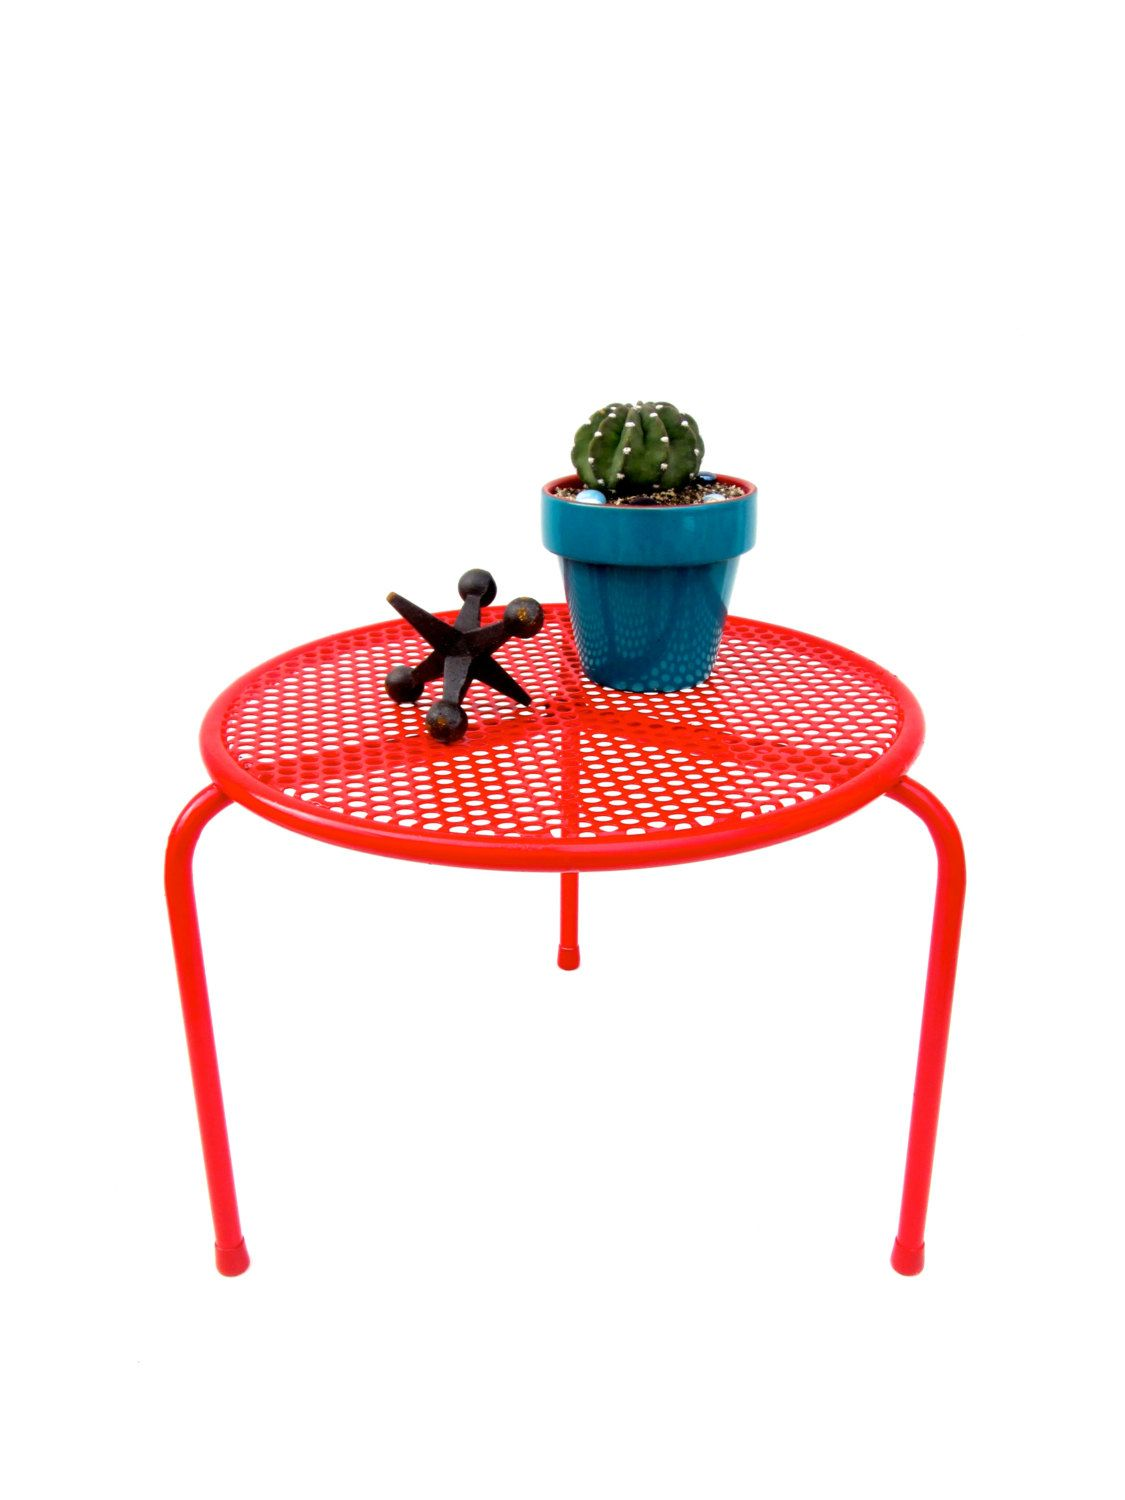 mid century modern red metal mesh table plant stand talin outdoor accent vintage retro small mcm indoor furnishing electricmarigold etsy target ott fold away desk tablecloth for